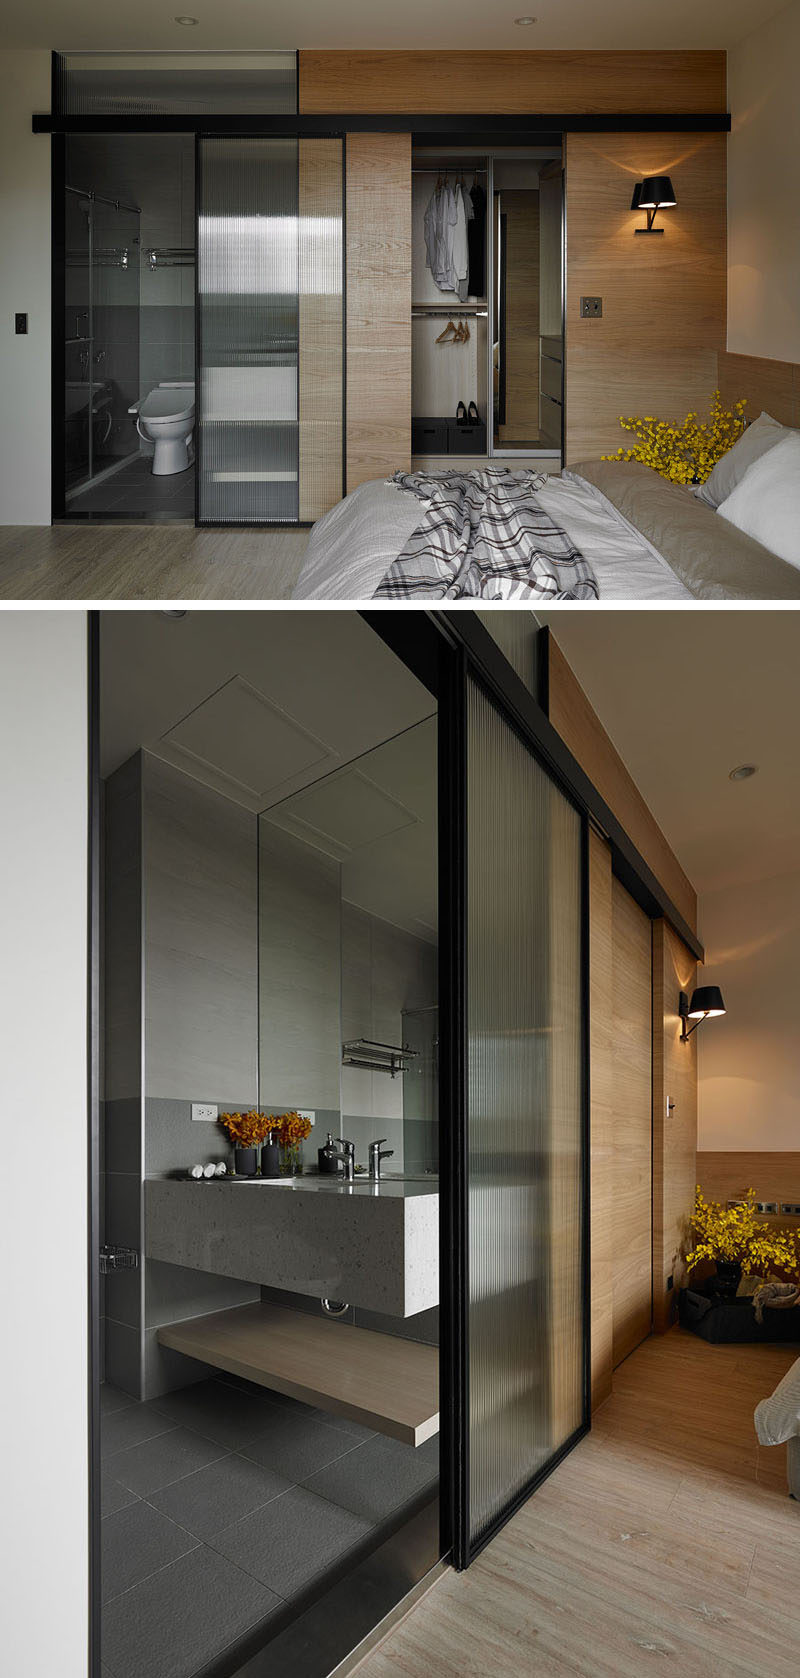 This ensuite-bathroom has a glass door to let natural light through to the bathroom.